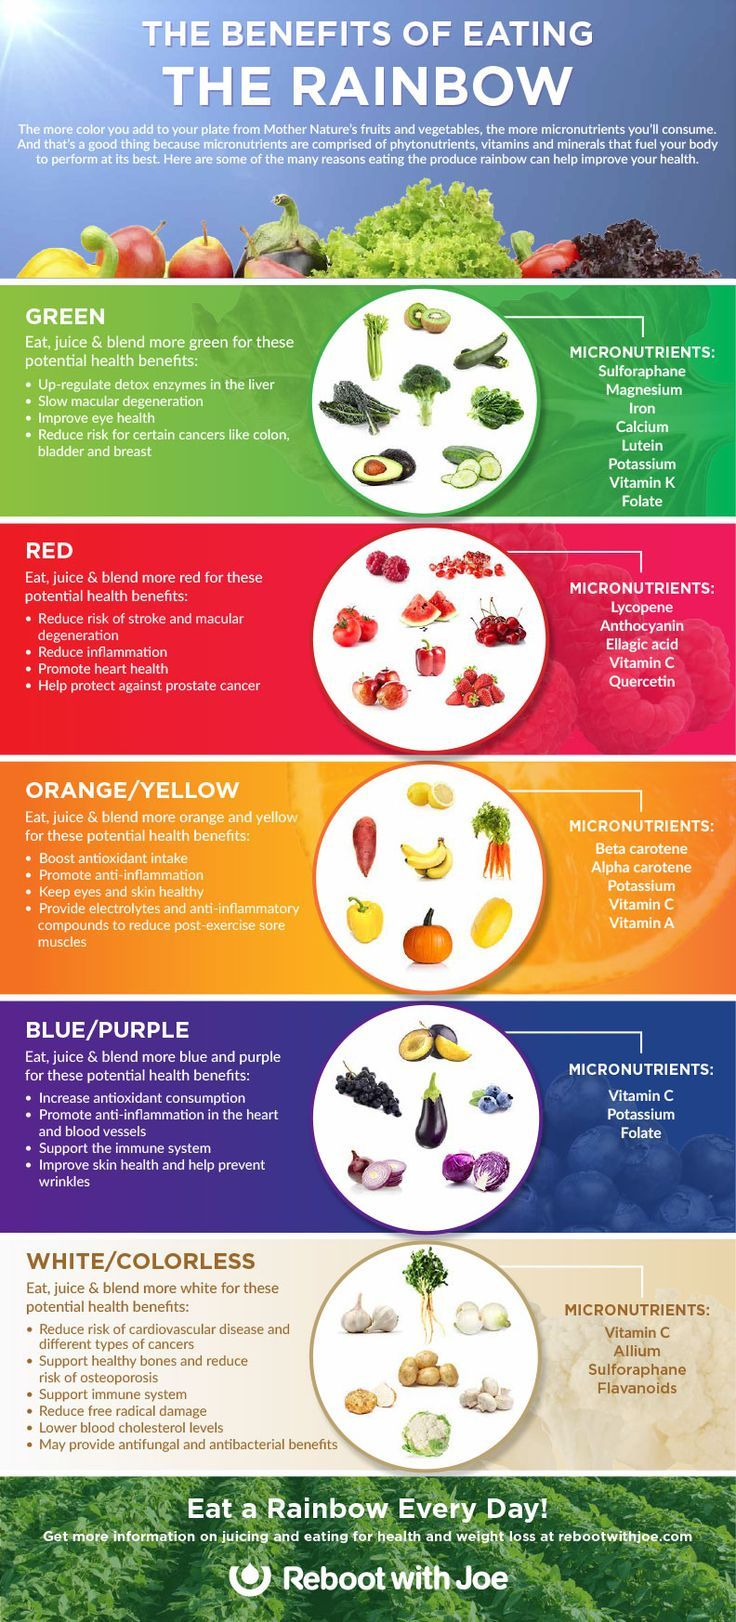 ~~The Benefits of Eating the Rainbow Infographic |  Green, red, yellow, orange, blue, purple and white fruits and vegetables that are grown right out of the ground, nourished by sunlight, and are the healthiest foods on the planet | Reboot with Joe~~